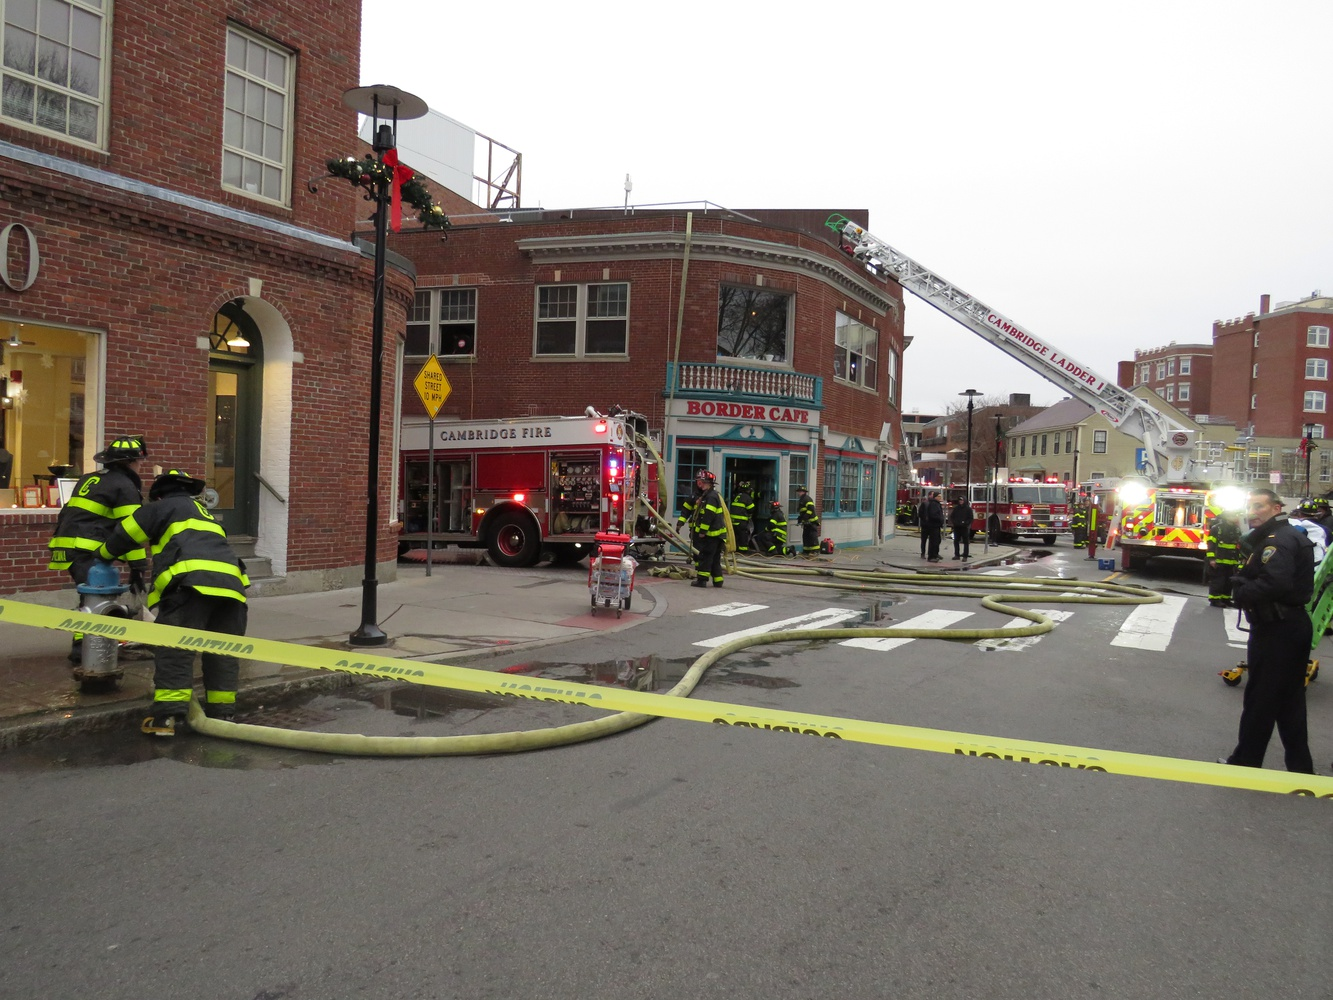 A fire broke out in the building that houses Border Cafe and Harvard Global Health Institute Sunday afternoon.